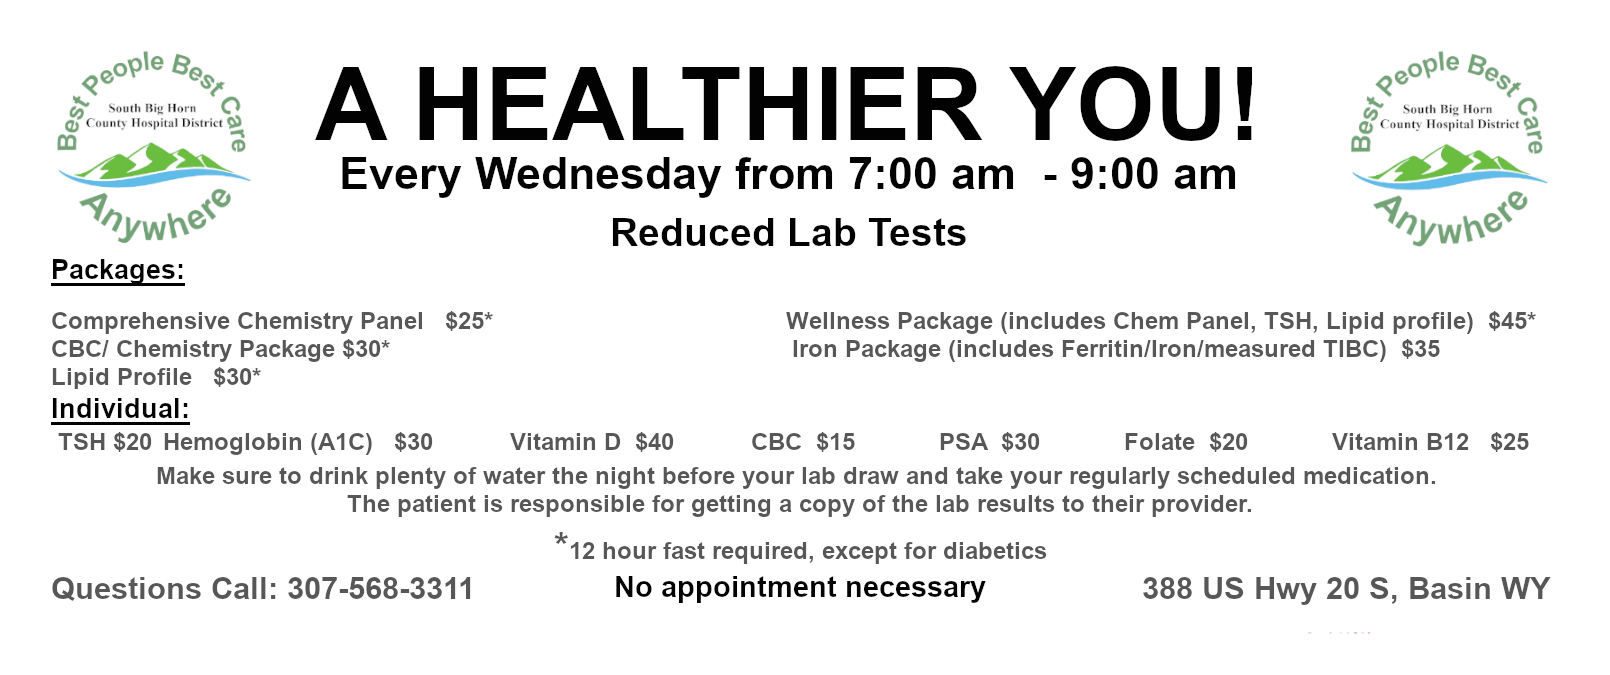 STARTING AUGUST 12TH A HEALTHIER YOU! Reduced Lab Tests Every Wednesday from 7:00am-9:00am Packages: Comprehensive Chemistry Panel   $25*CBC/ Chemistry Package $30* Iron Package (includes Ferritin/Iron/measured TIBC)   $35Lipid Profile   $30 Wellness Package (includes Chem Panel, TSH, Lipid profile)  $45* Individual:  TSH $20Hemoglobin (A1C)   $30Vitamin D  $40CBC  $15PSA  $30 Folate  $20Vitamin B12   $25 *12 hour fast required, except for diabetics  Make sure to drink plenty of water the night before your lab draw and take your regularly scheduled medication. The patient is responsible for getting a copy of the lab results to their provider. Space is limited, call for an appointment to secure your time. (307) 568-3311www.southbighornhospital.com 388 US Hwy 20, Basin WY 82410